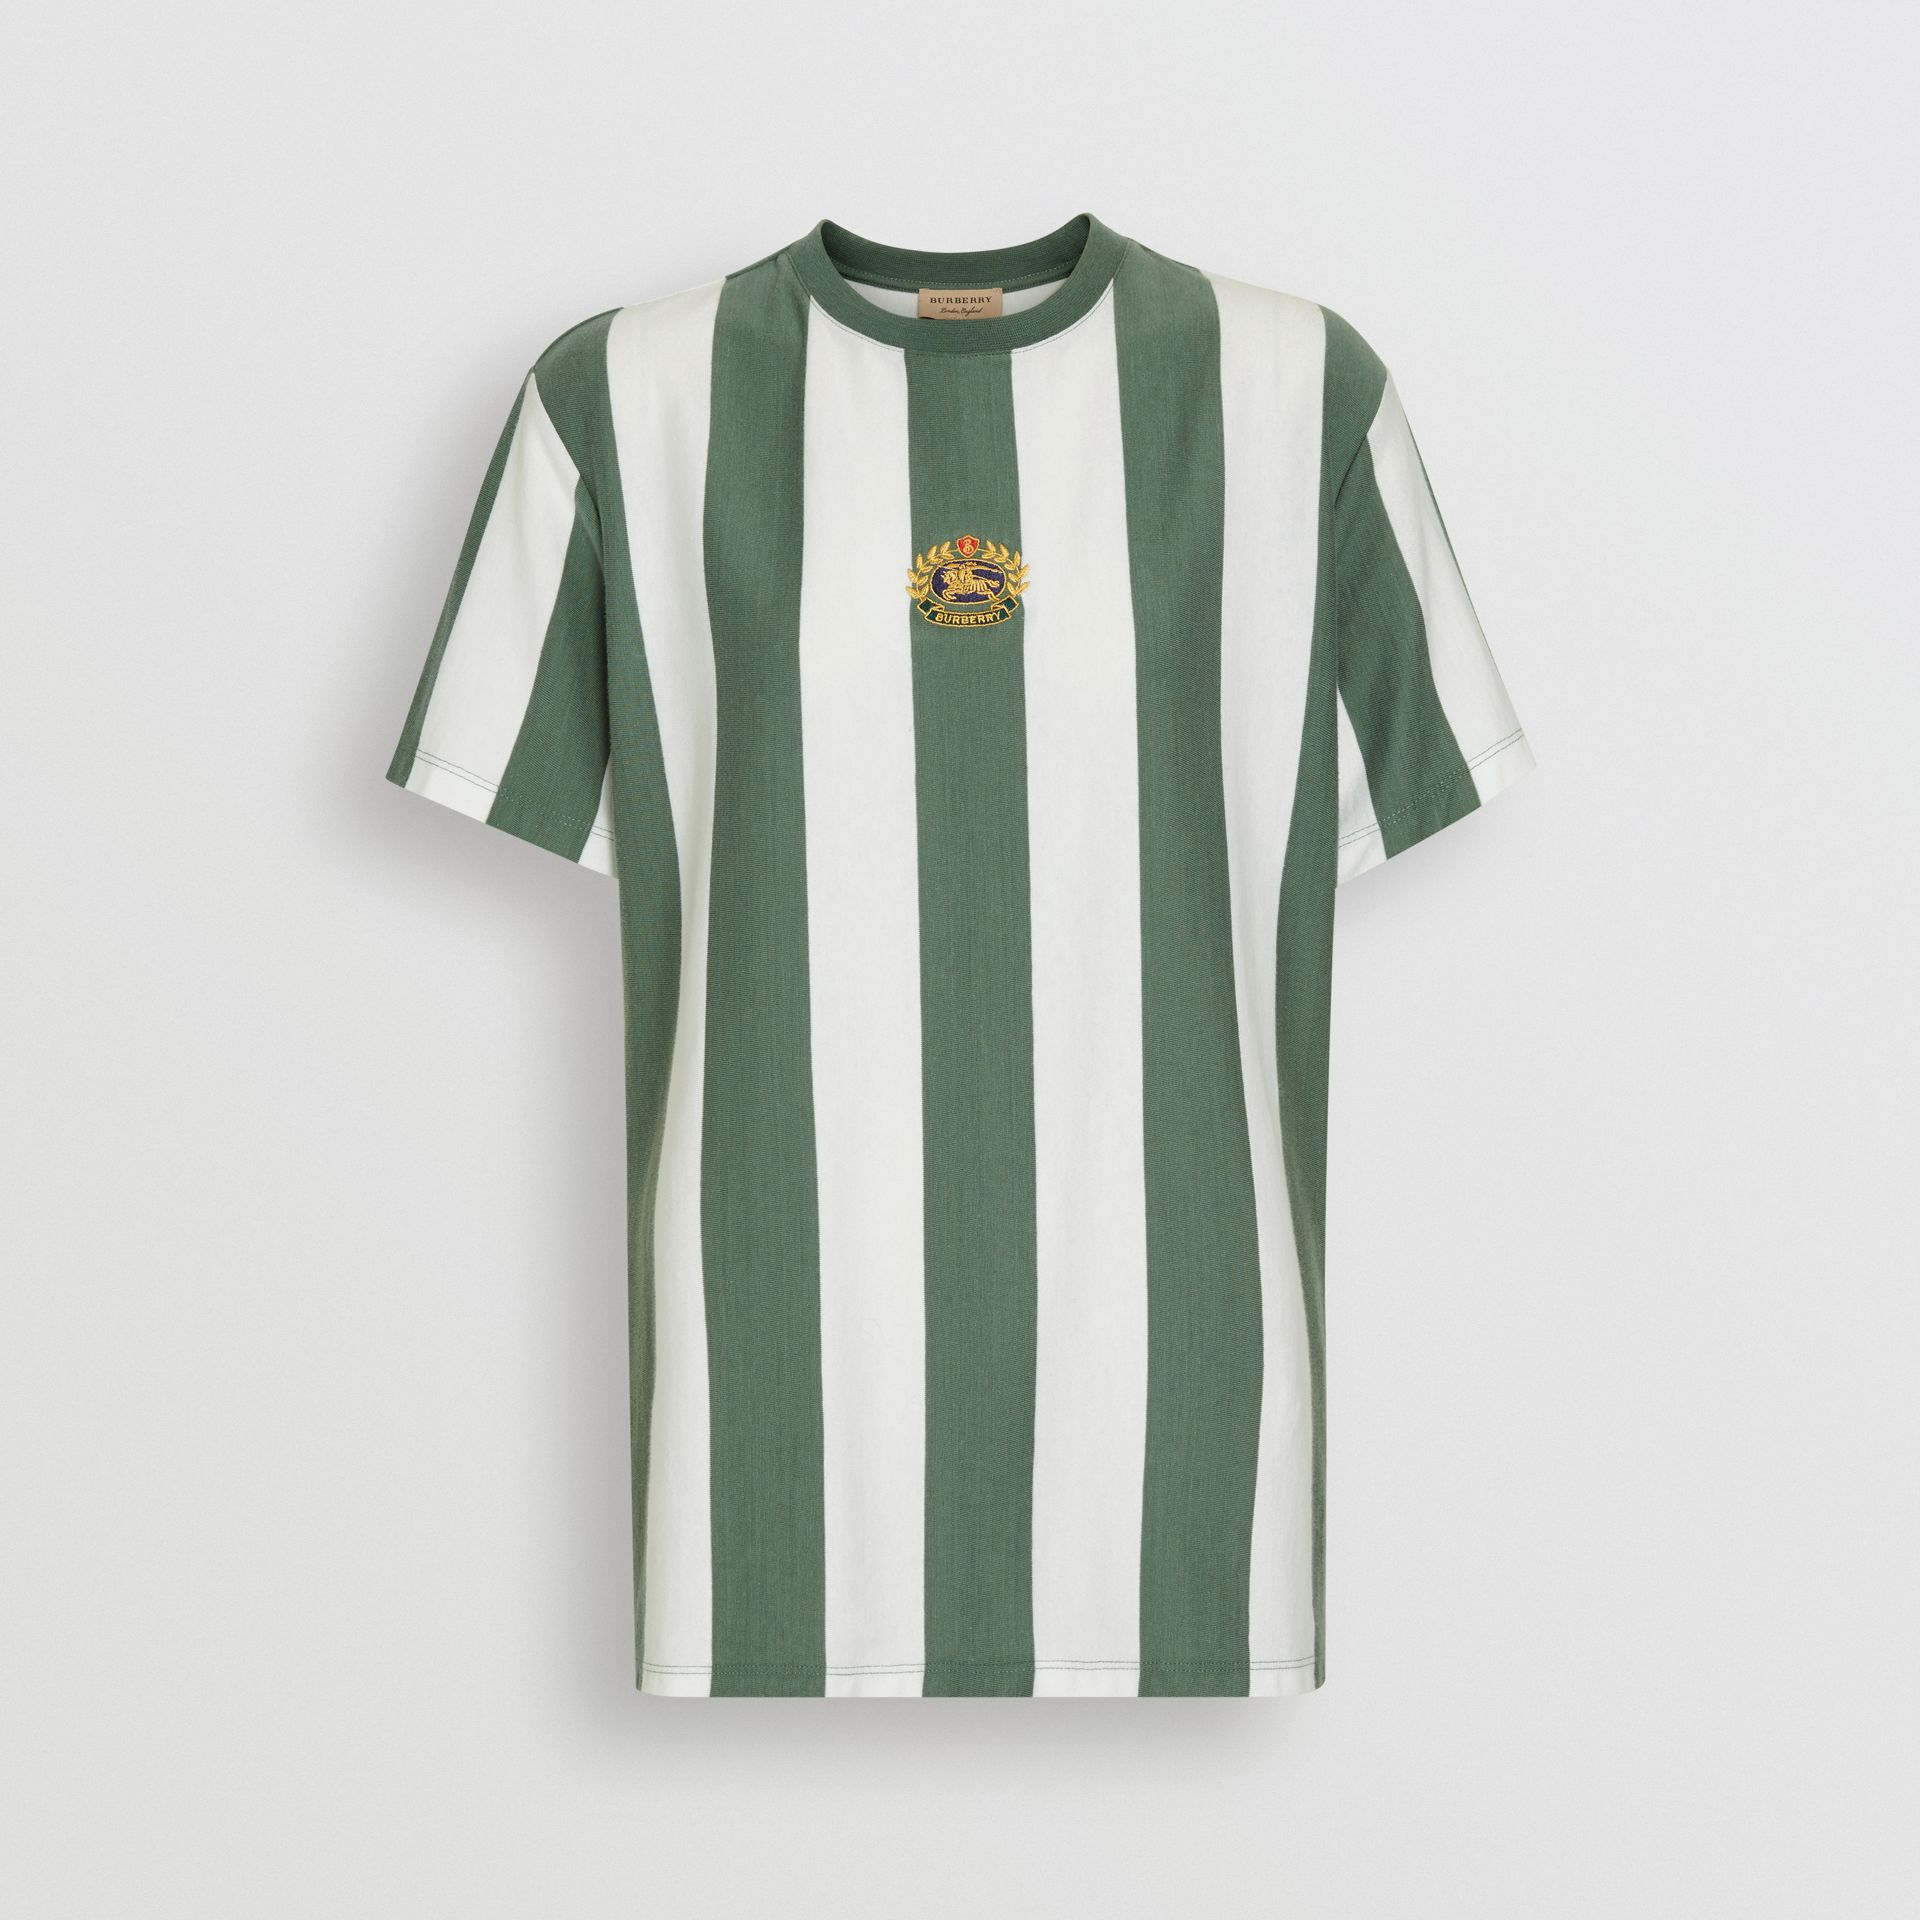 Embroidered Crest Striped Cotton T-shirt in Forest Green - Women | Burberry - gallery image 3